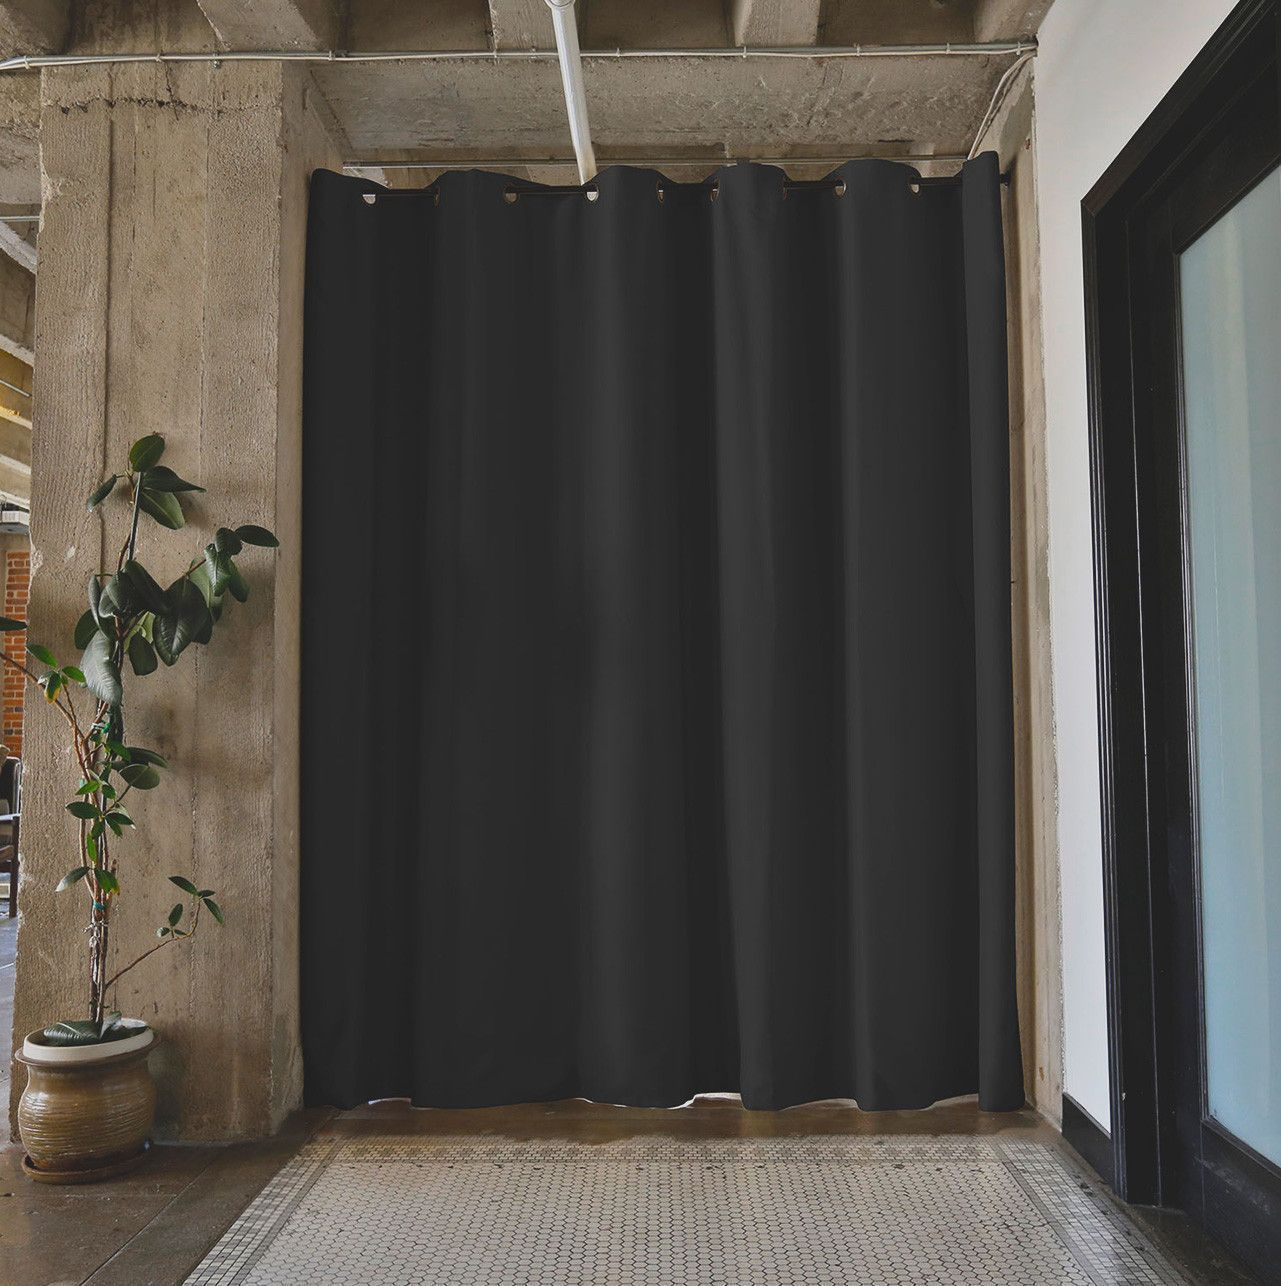 Cool u unique floor to ceiling shower curtain ideas for small